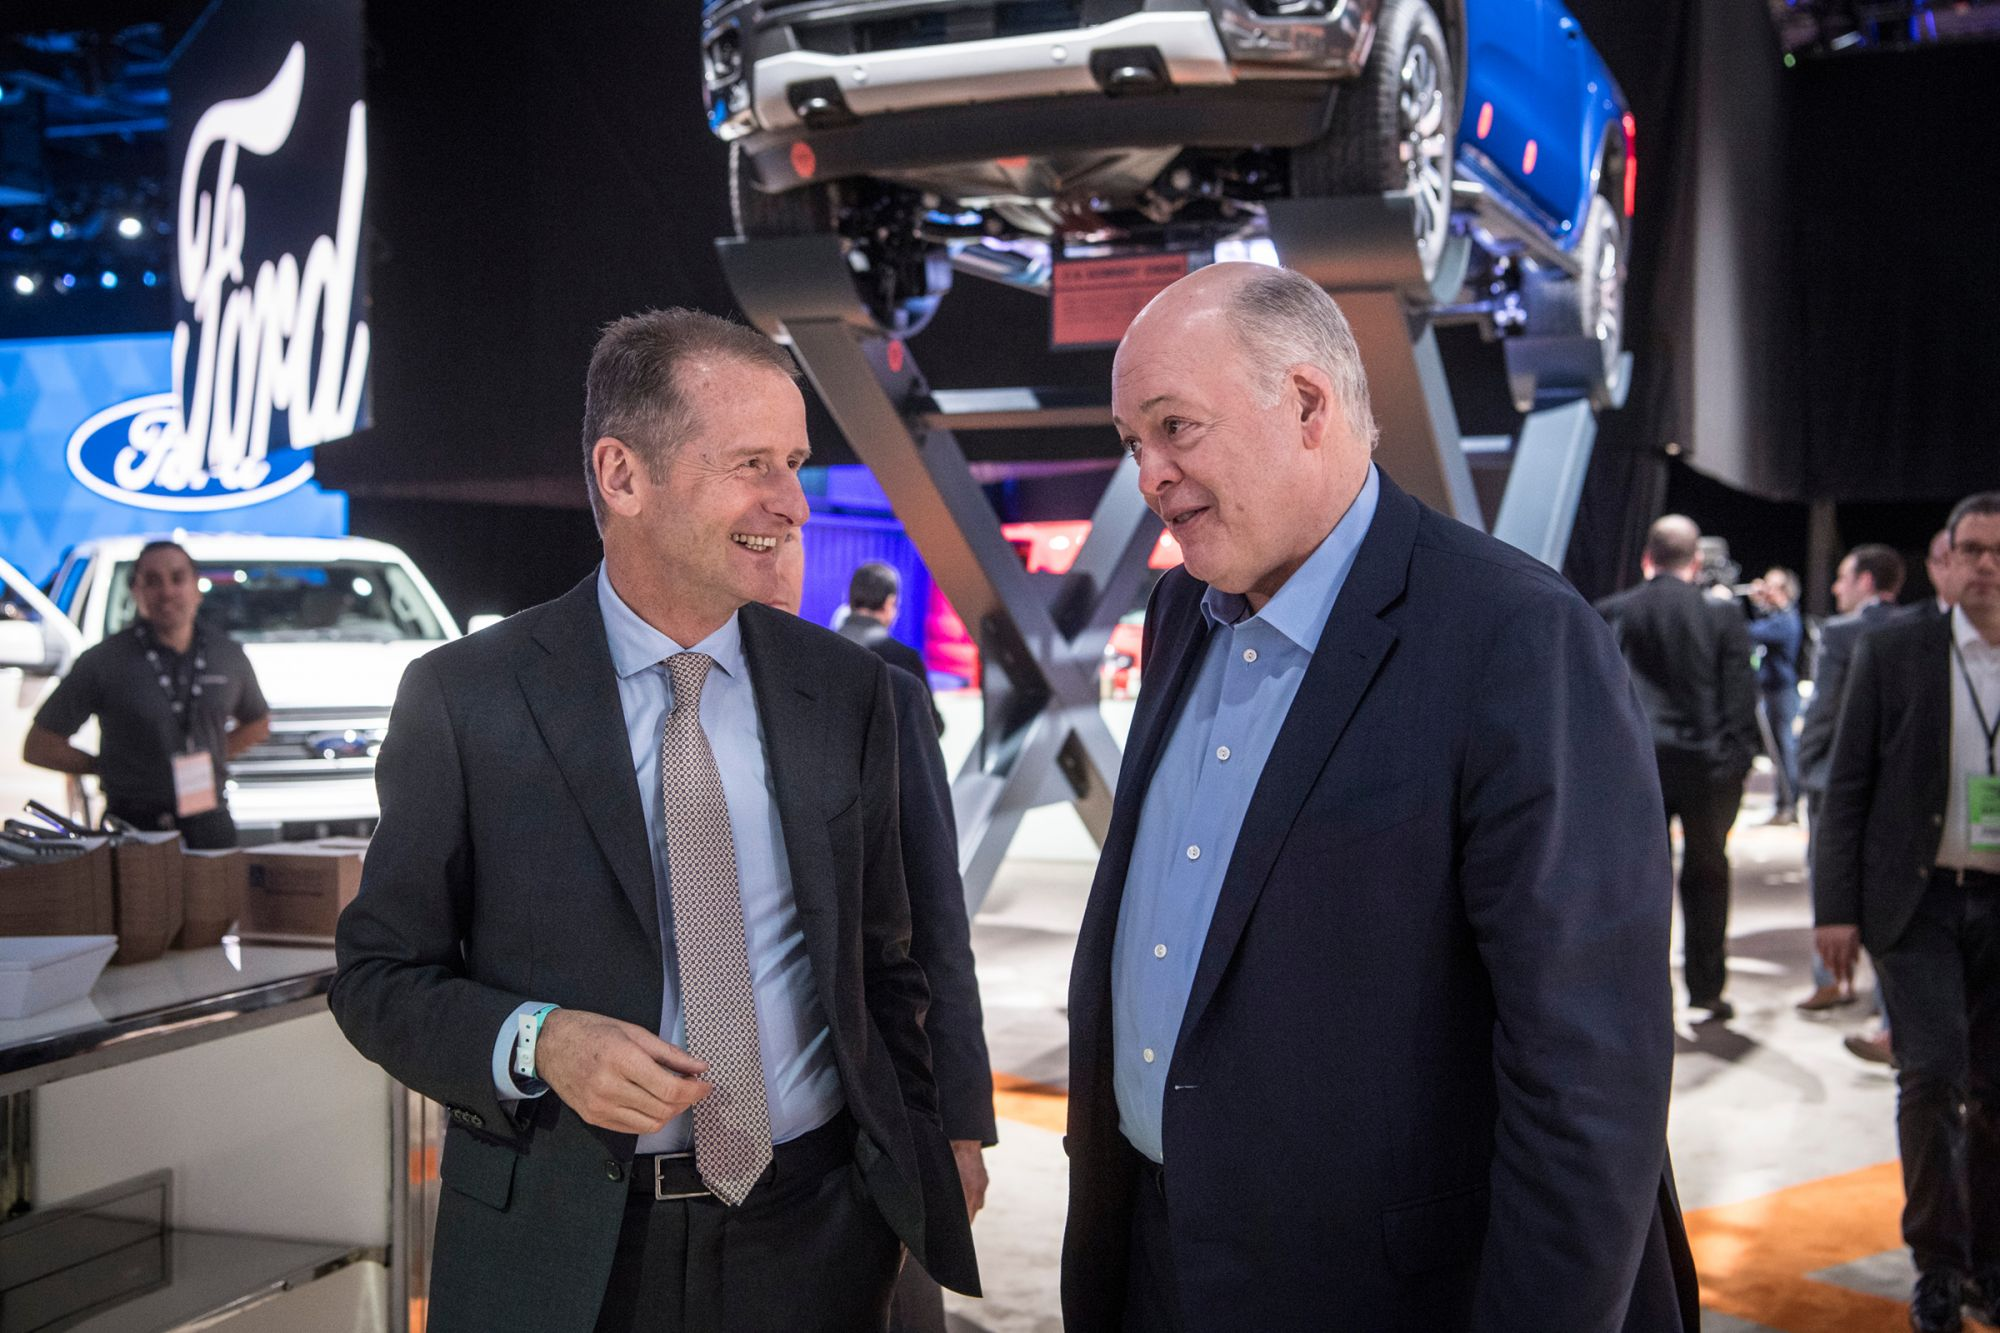 Ford Formally Announces a Partnership With Volkswagen, But Its Stock Price Still Falls